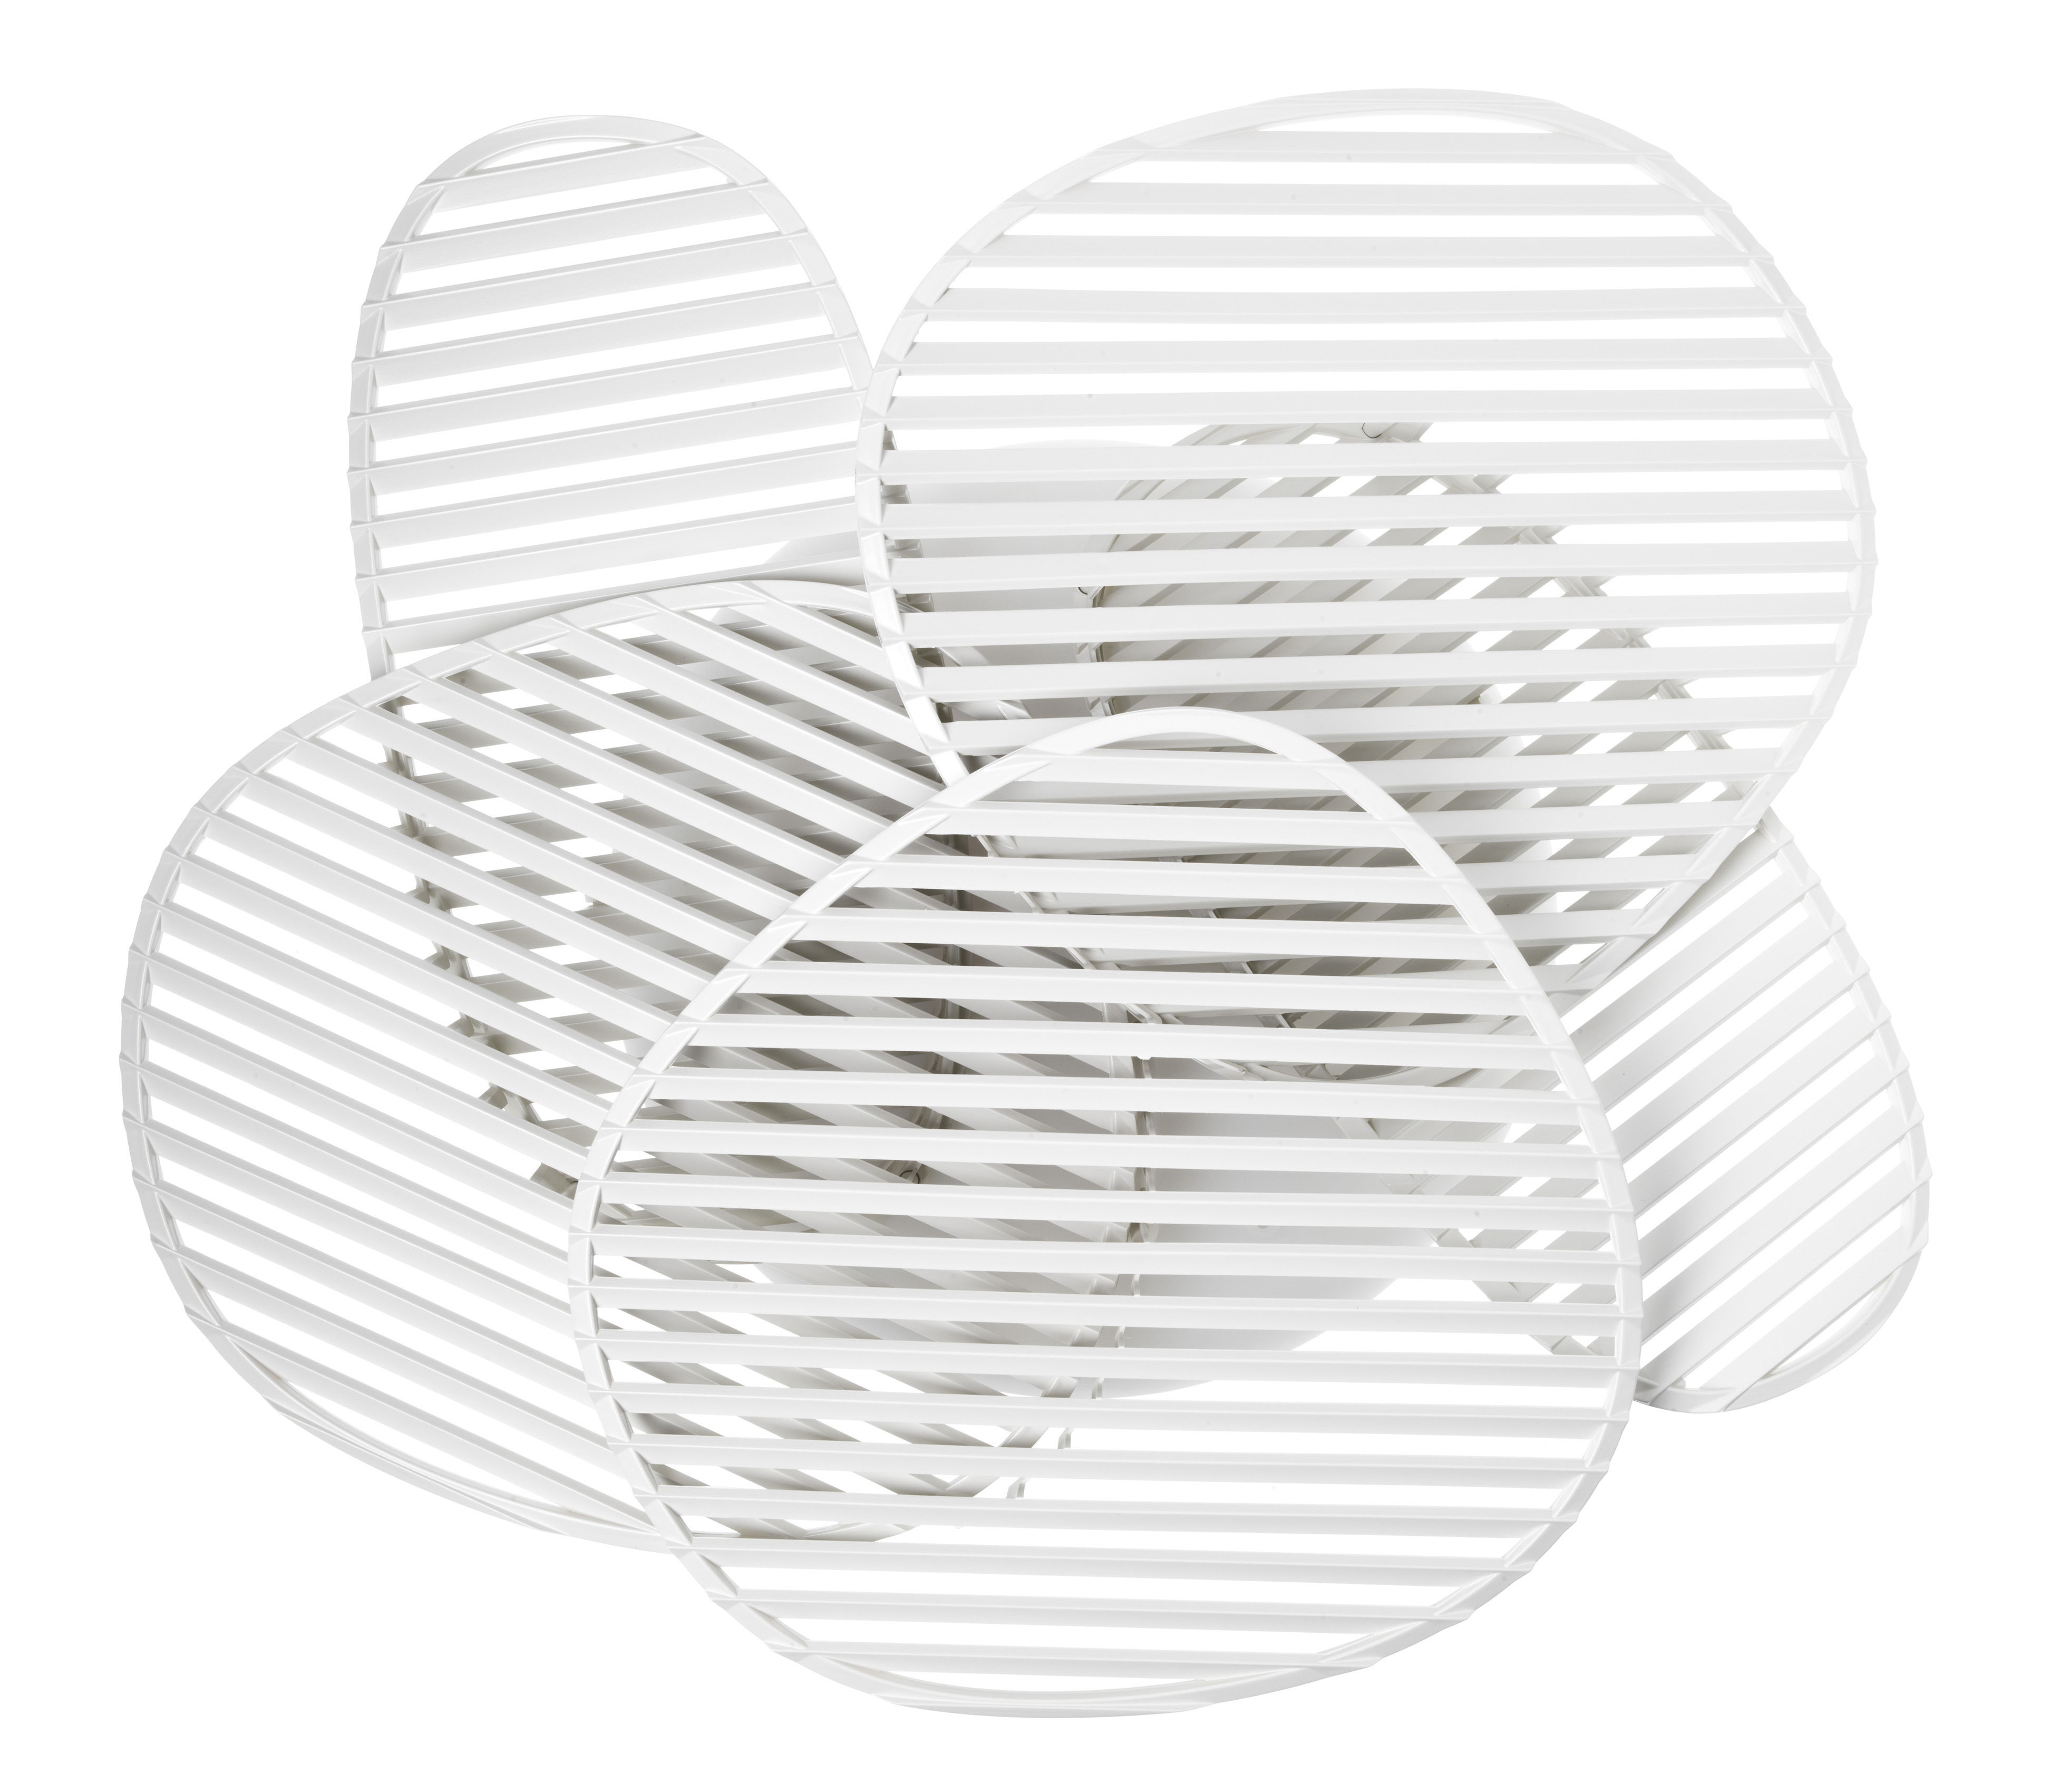 Lighting - Wall Lights - Nuage Wall light by Foscarini - White - ABS, Polycarbonate